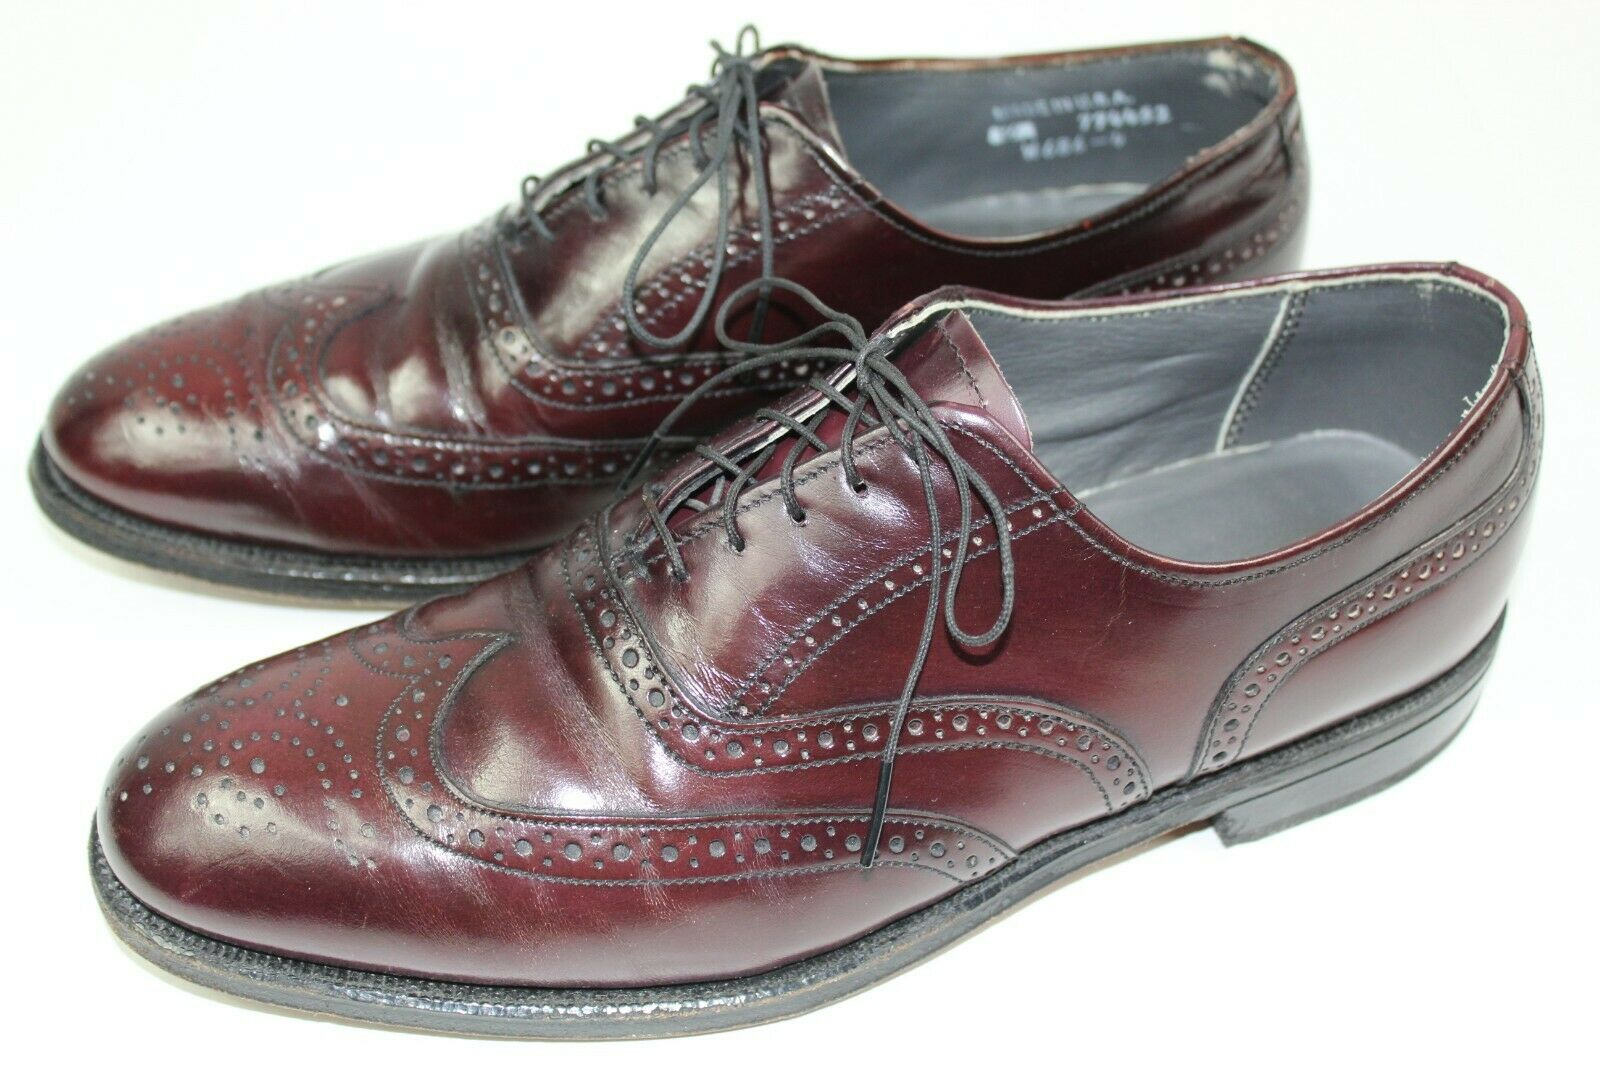 Dexter mens dress shoes full brogue wingtip oxfords size 8.5 burgundy leather